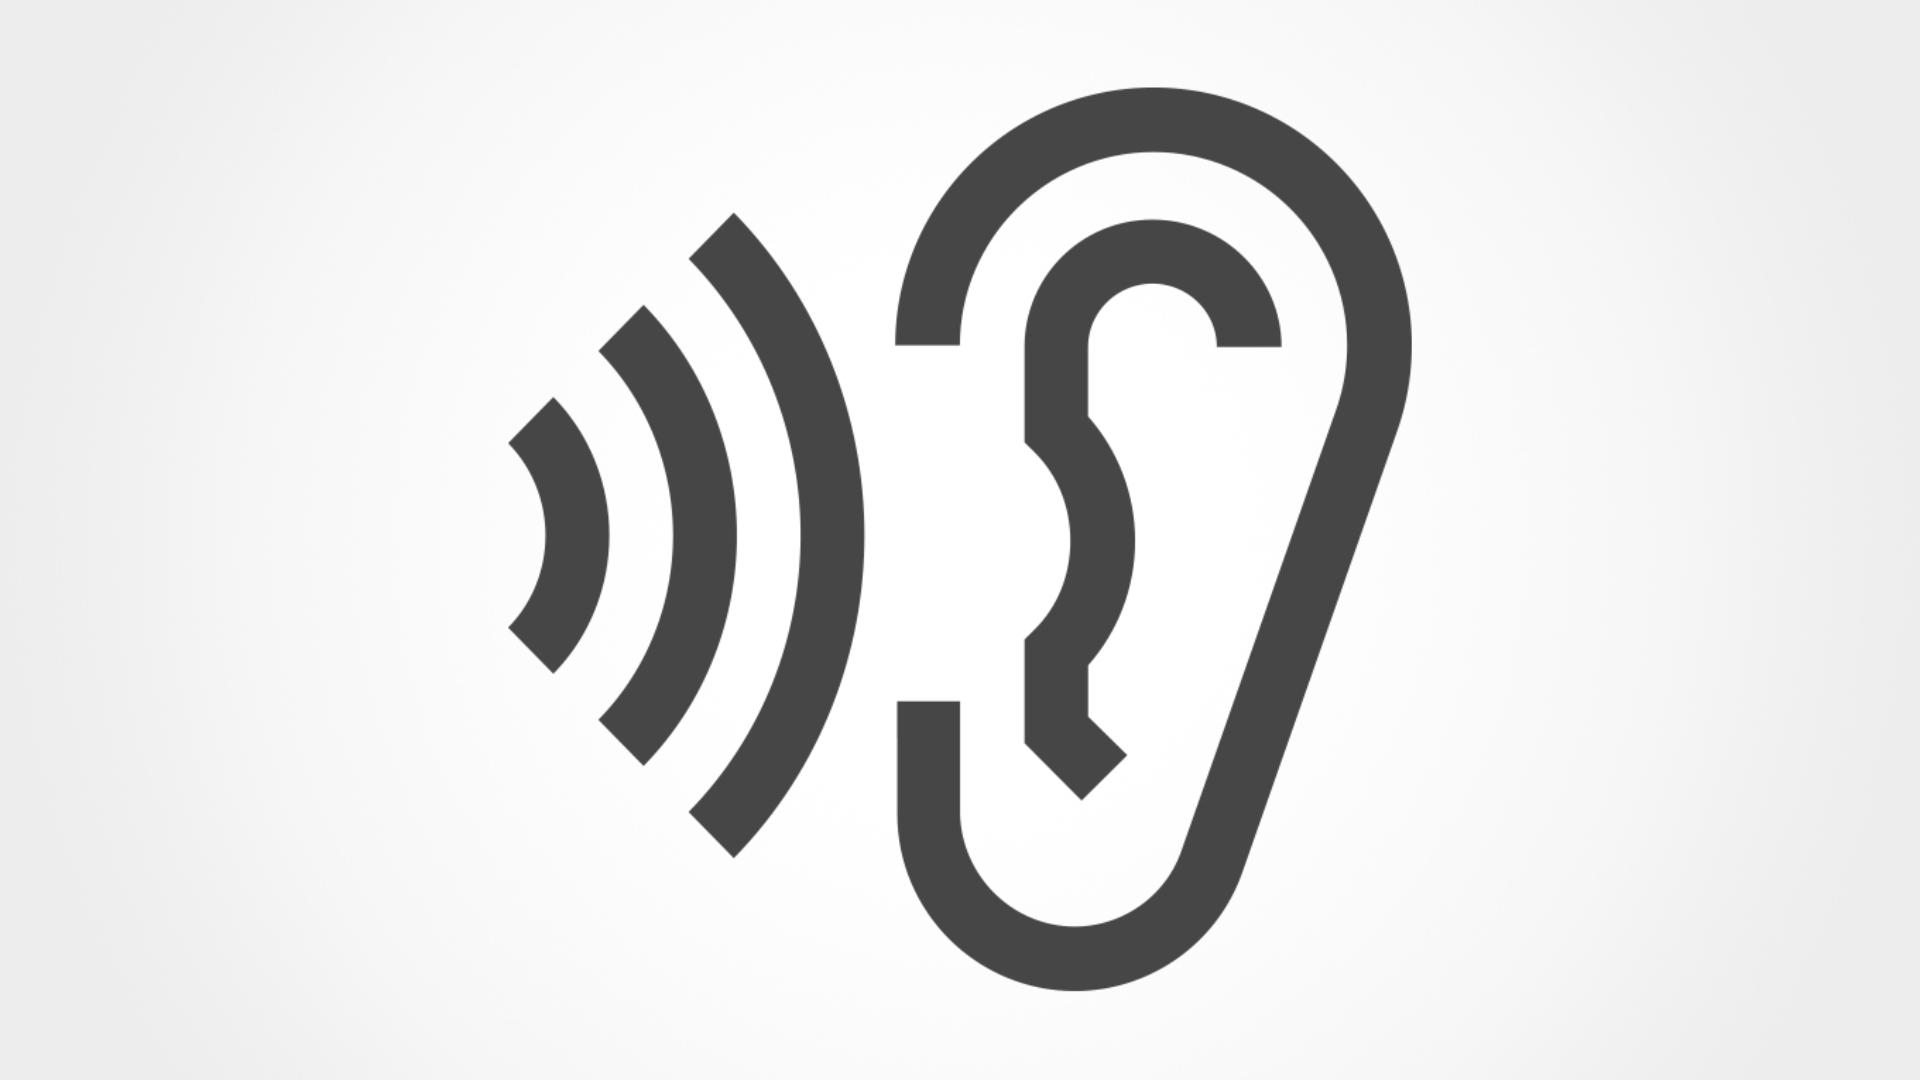 Ear depicting quieter sound levels